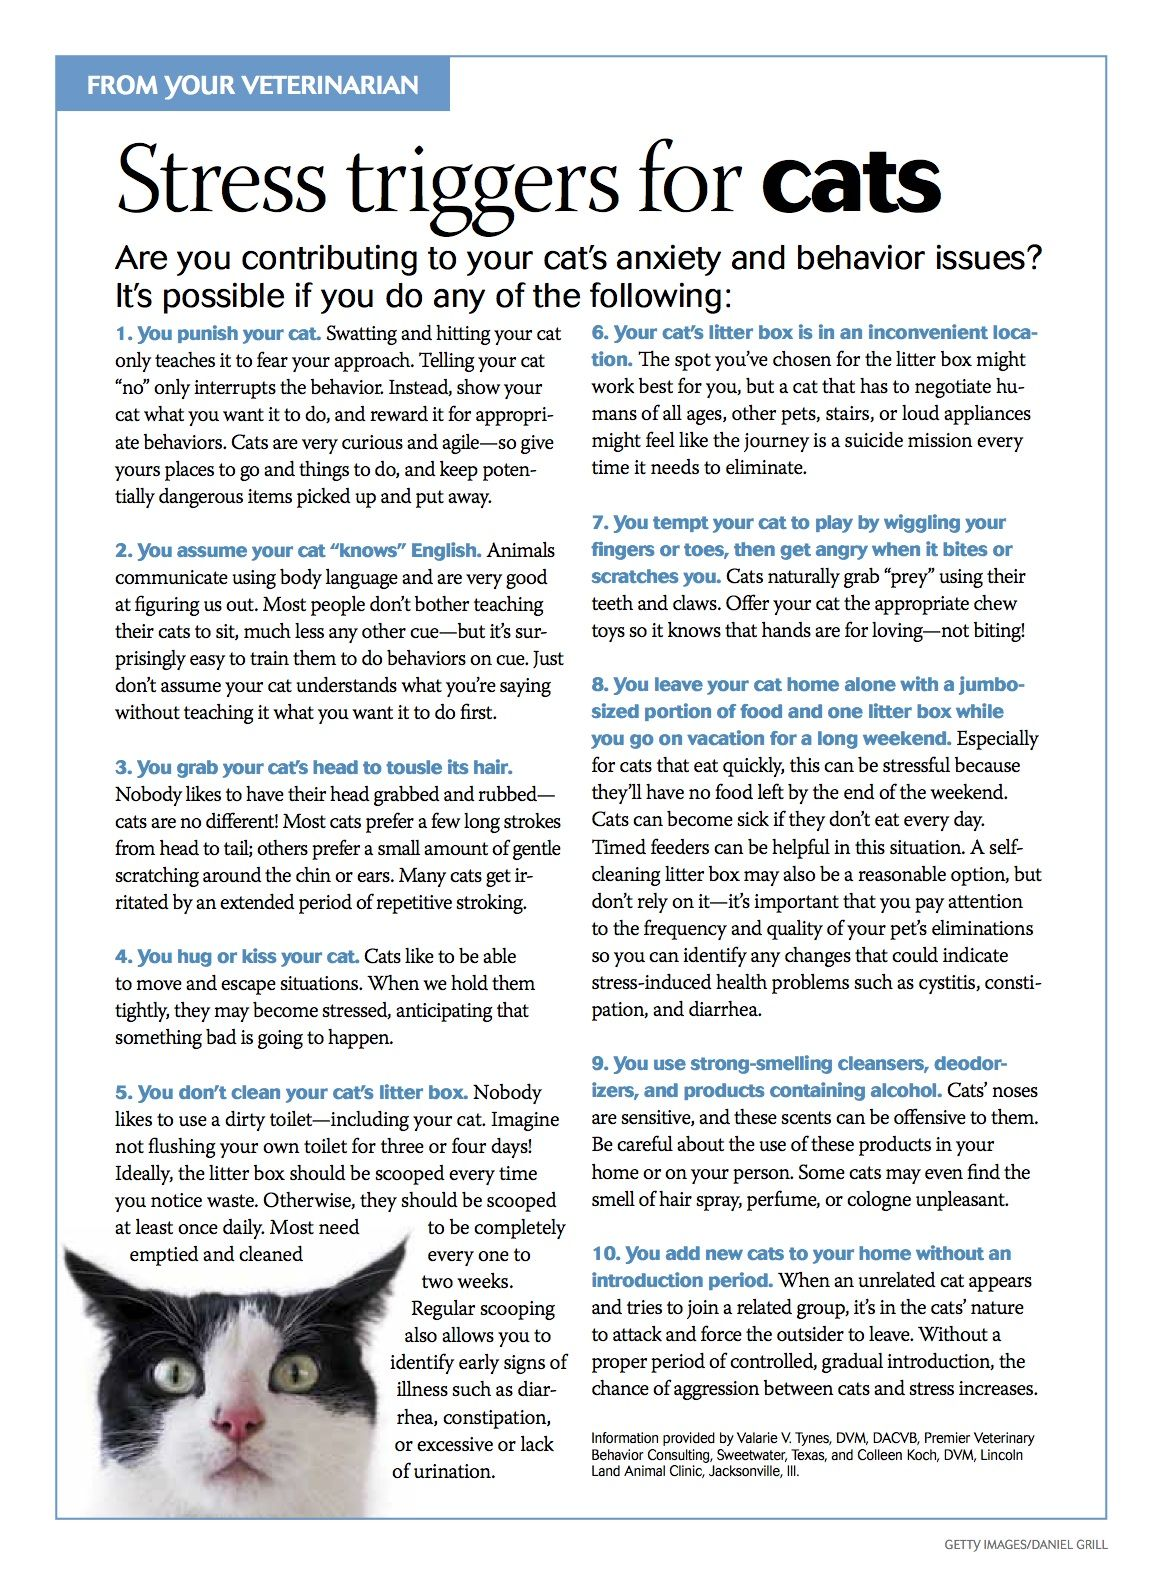 Stress triggers for cats. pets pethealth petsafety